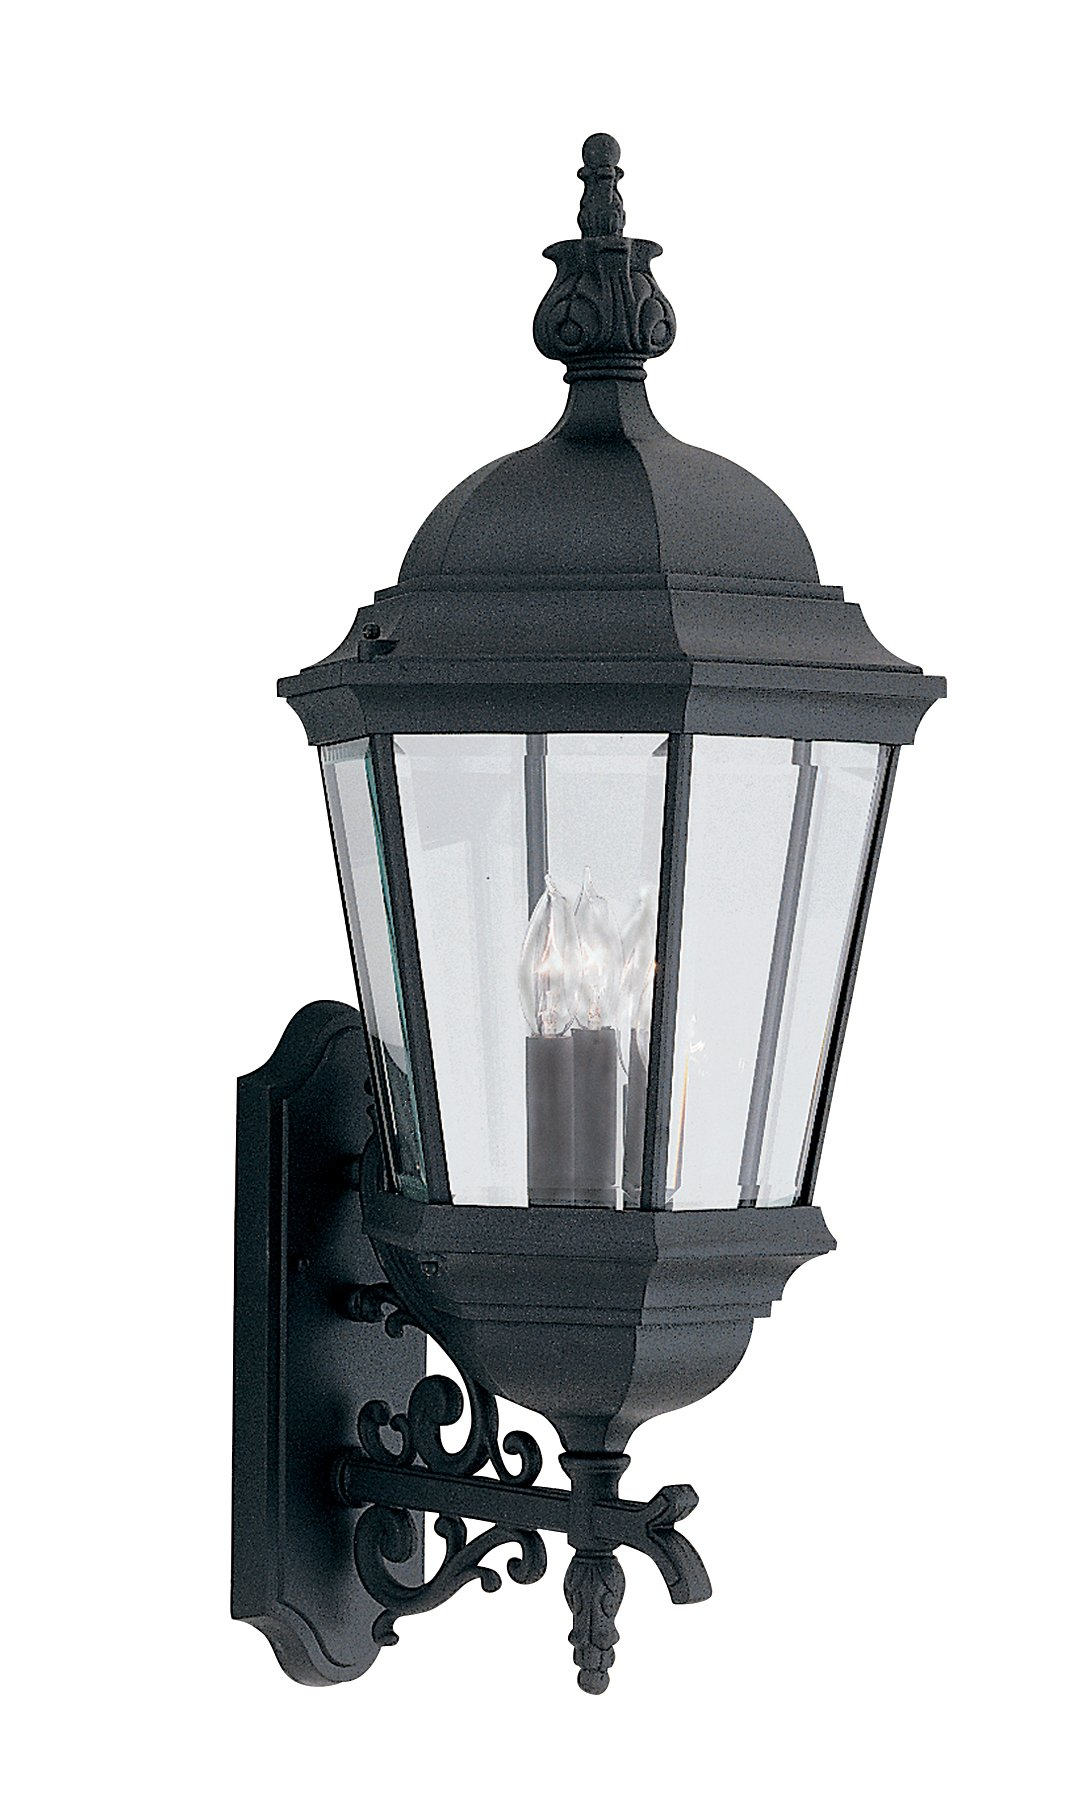 Designers Fountain 2952-BK Value Collection Wall Lanterns, Black